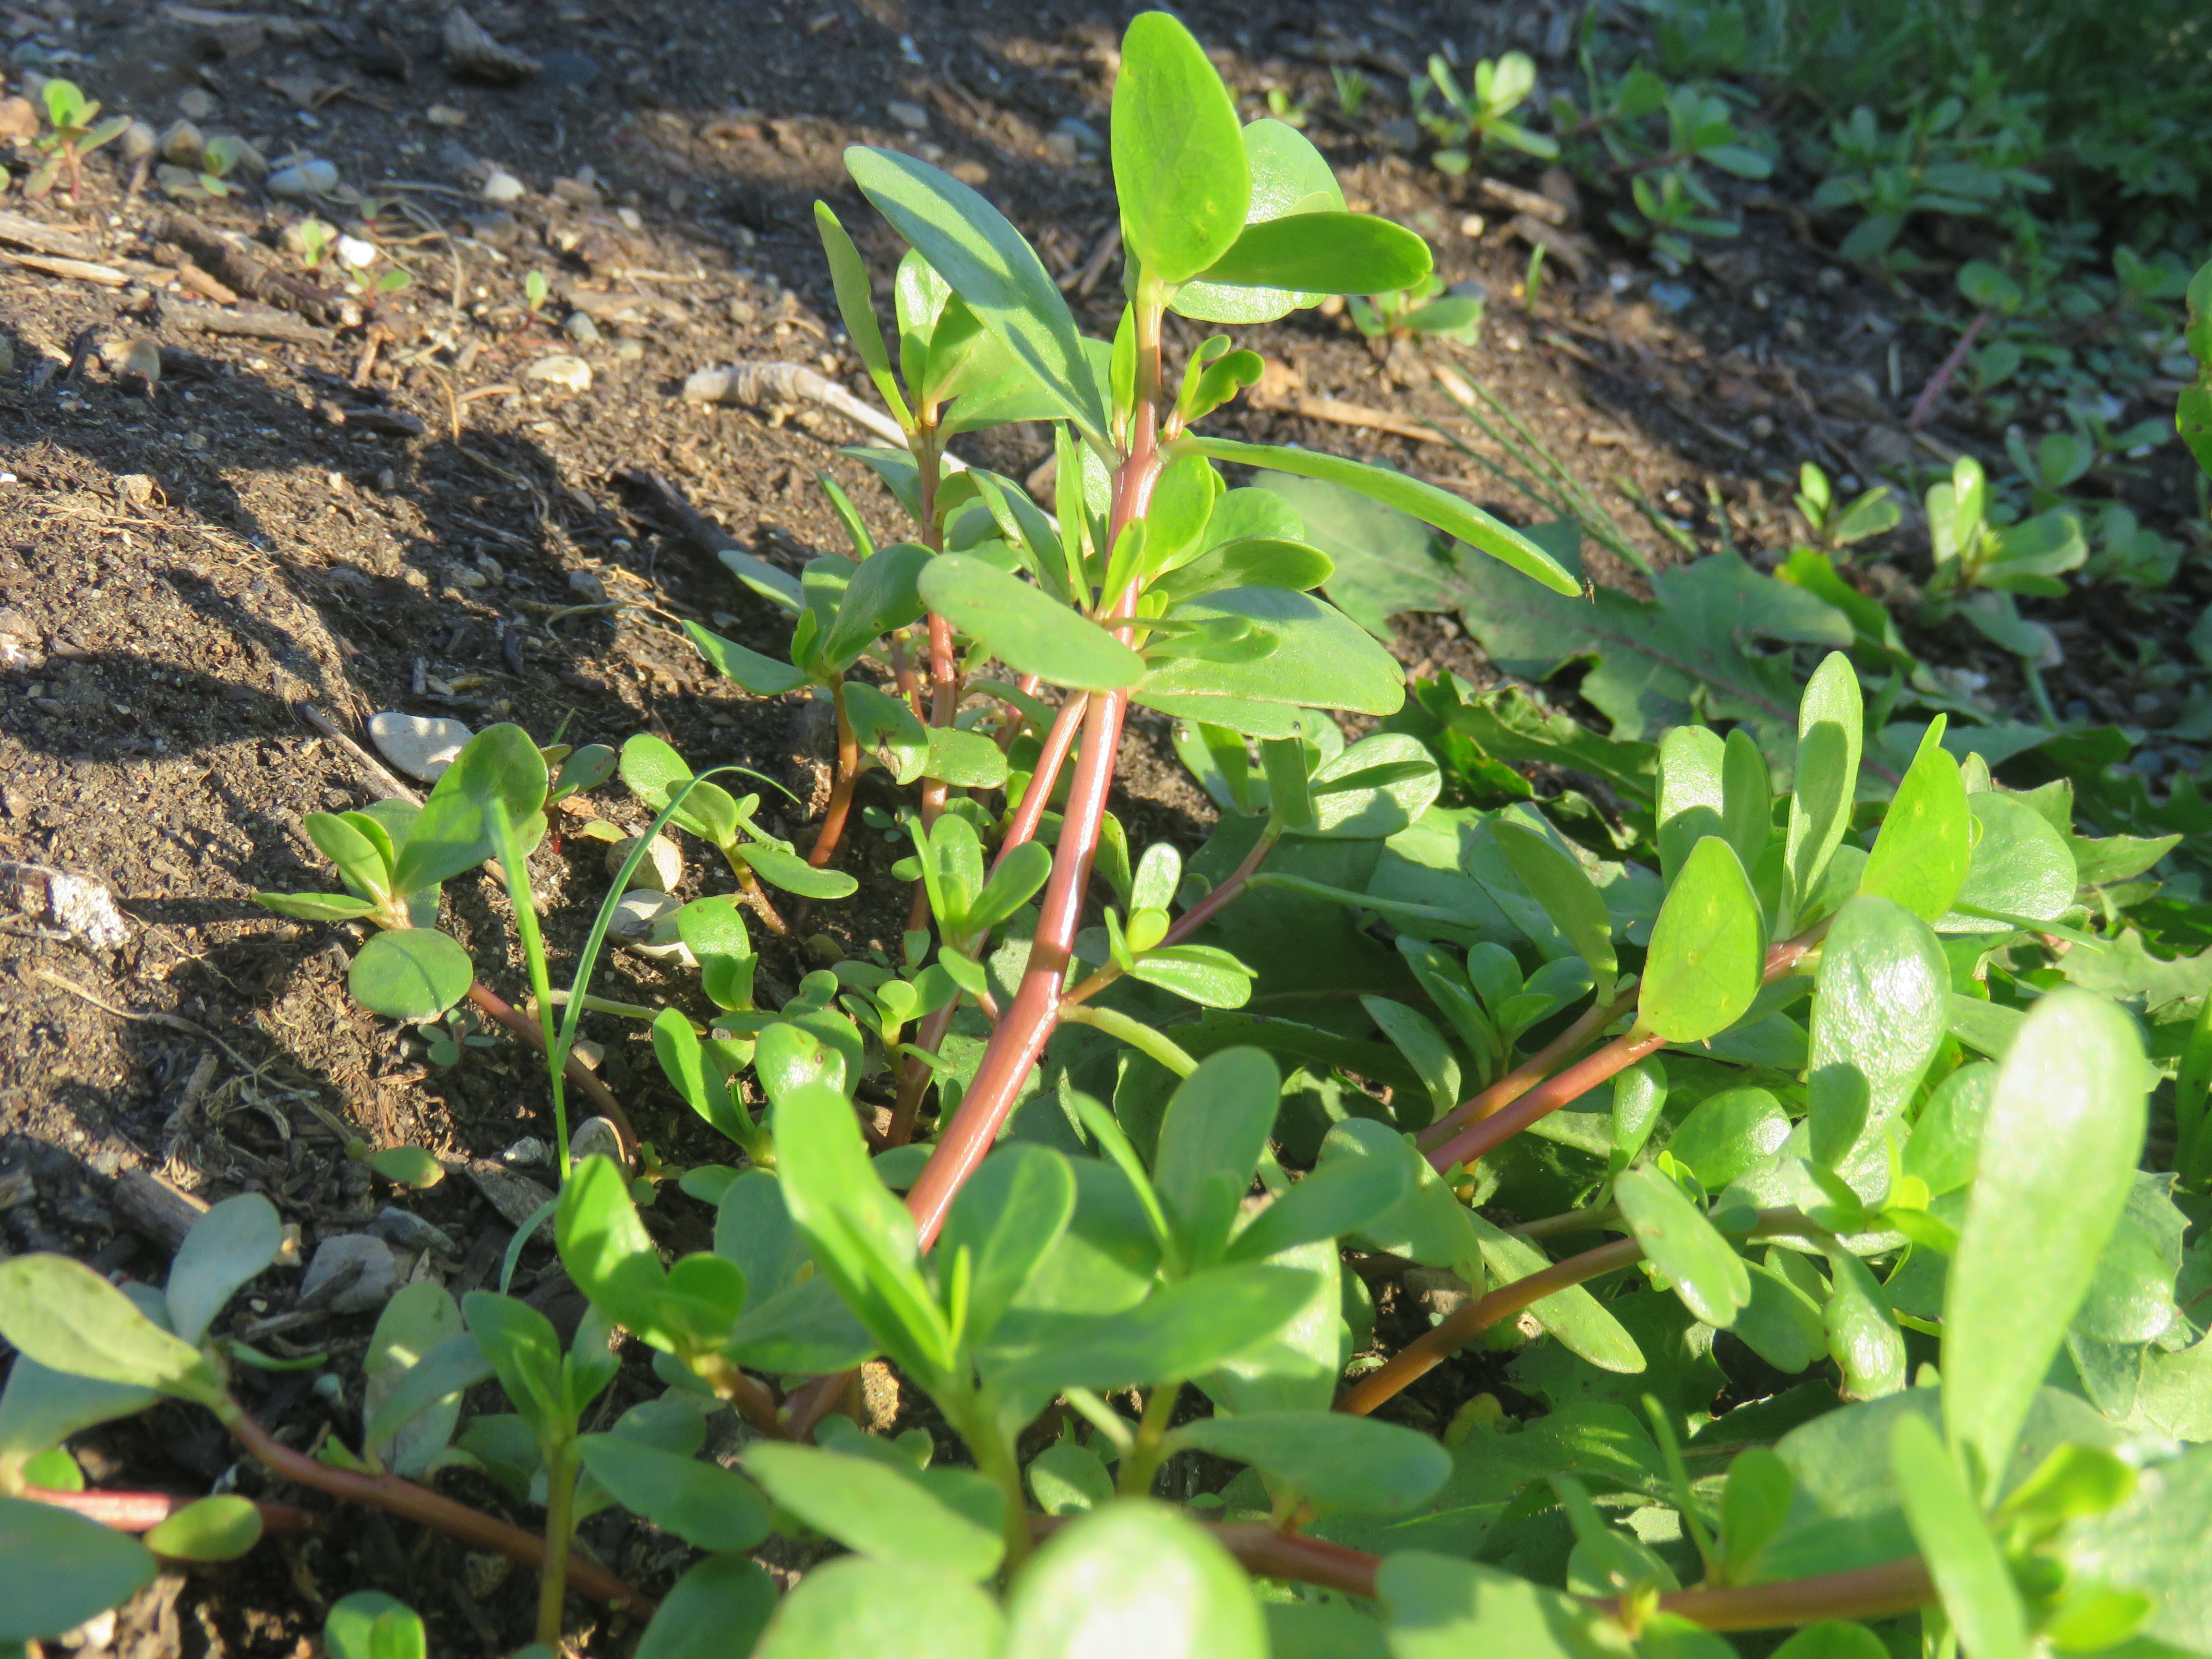 A close up shot up Common Purslane growing in dirt.